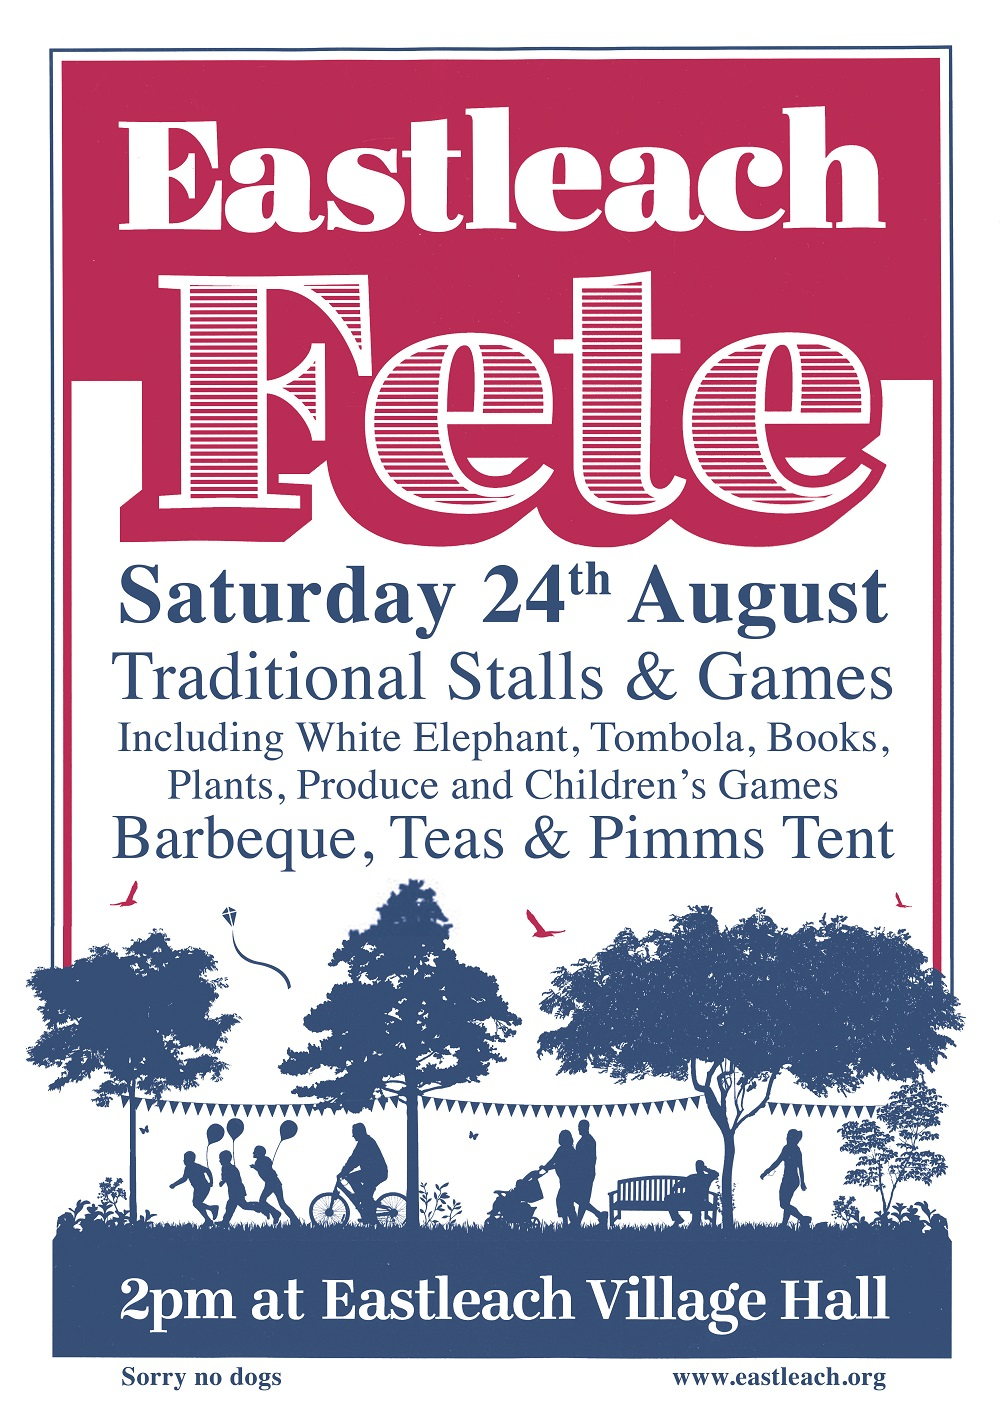 Plants, pots, unwanted gardening equipment needed for sale on the garden stall at the Eastleach Village Fete on the 24th August 2019